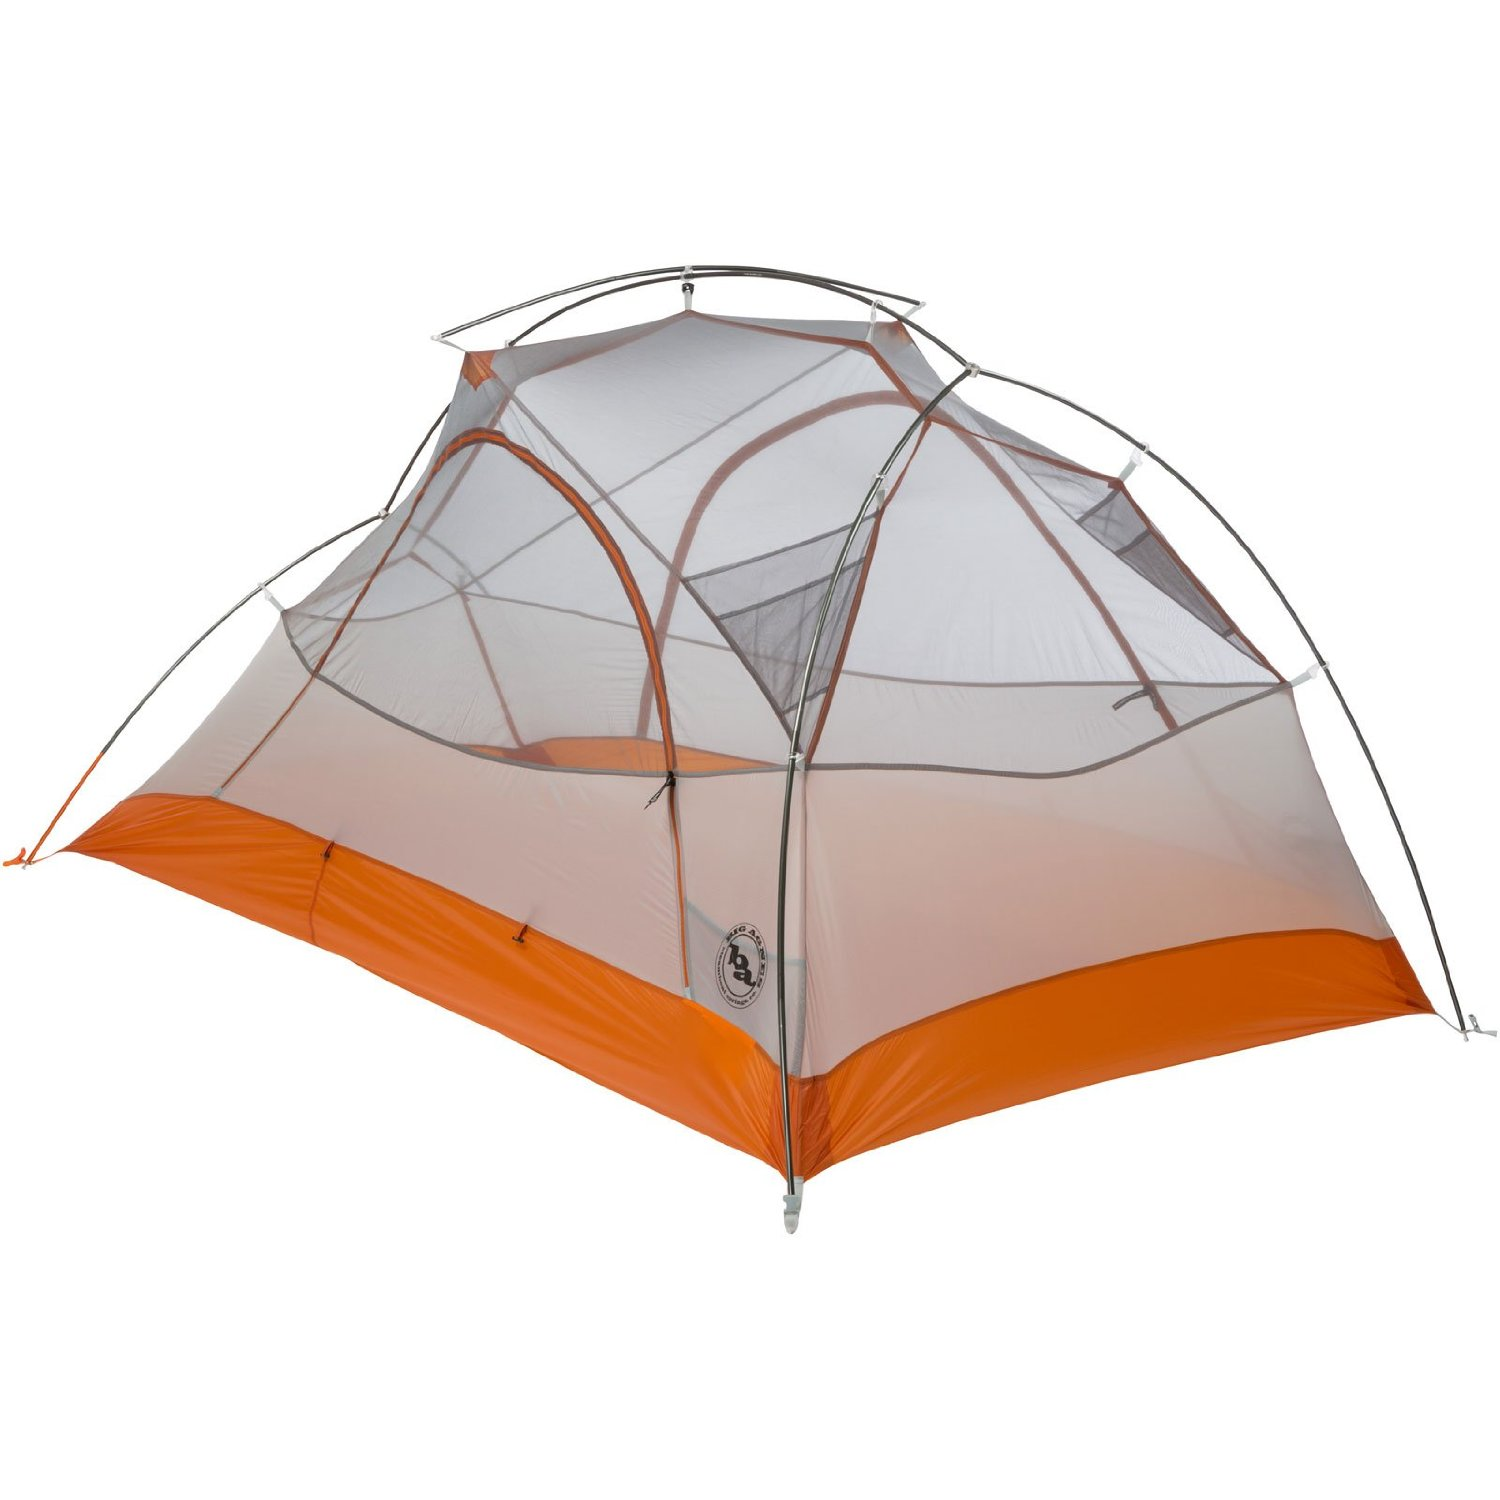 sc 1 st  Great Outdoor Product Store & Big Agnes Copper Spur Tent Review | Great Outdoor Product Store